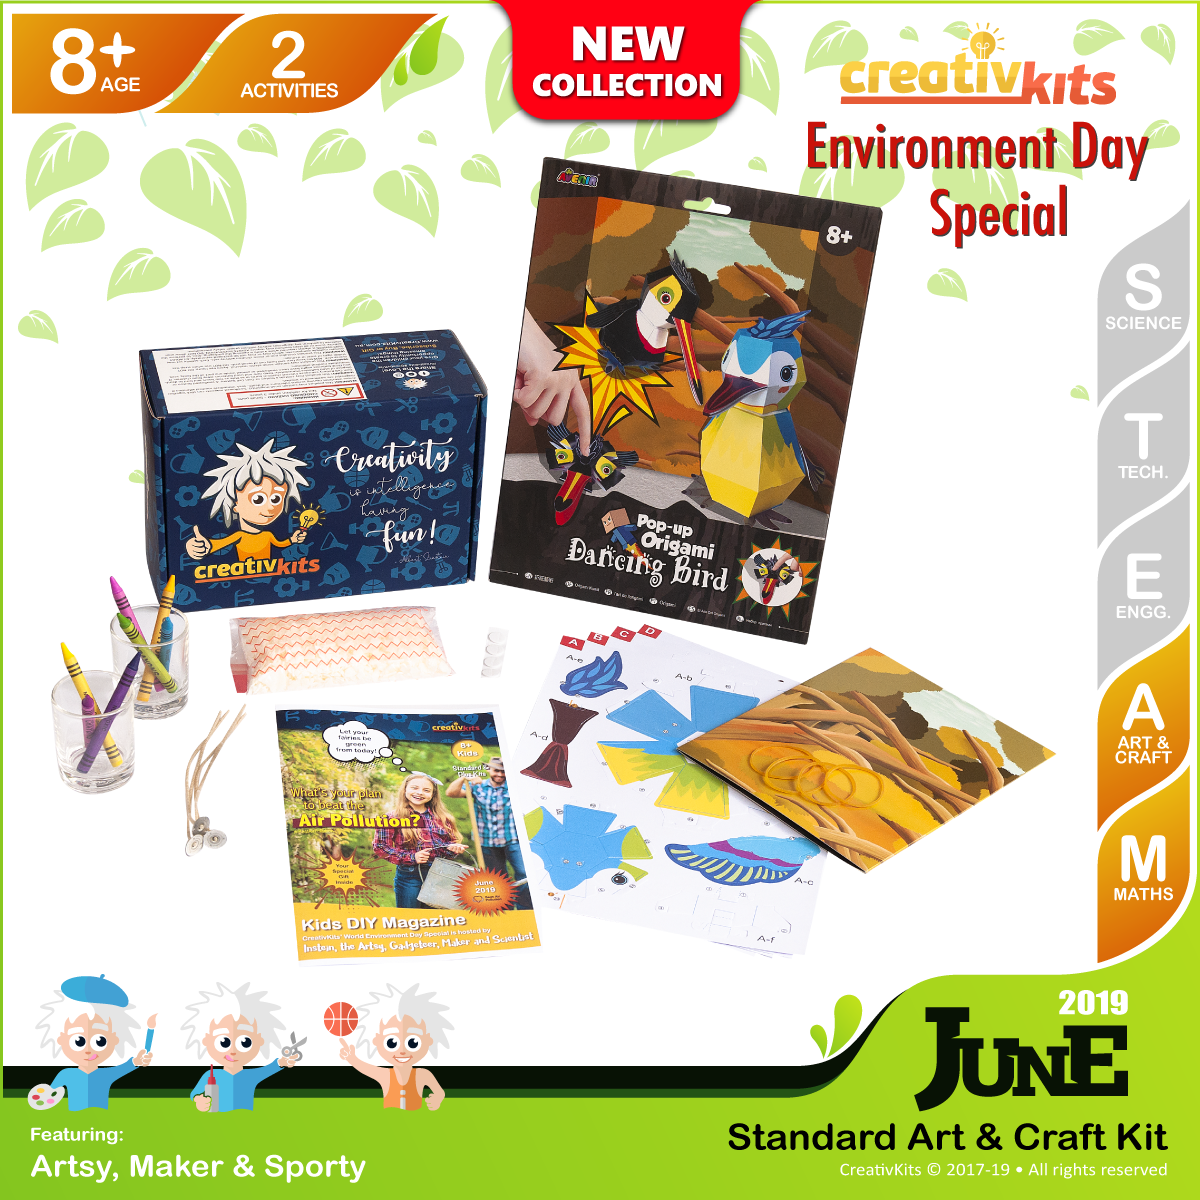 June Standard Art & Craft Kit • Age 8 plus • MYO Wax Candles and Pop Up Origami Art